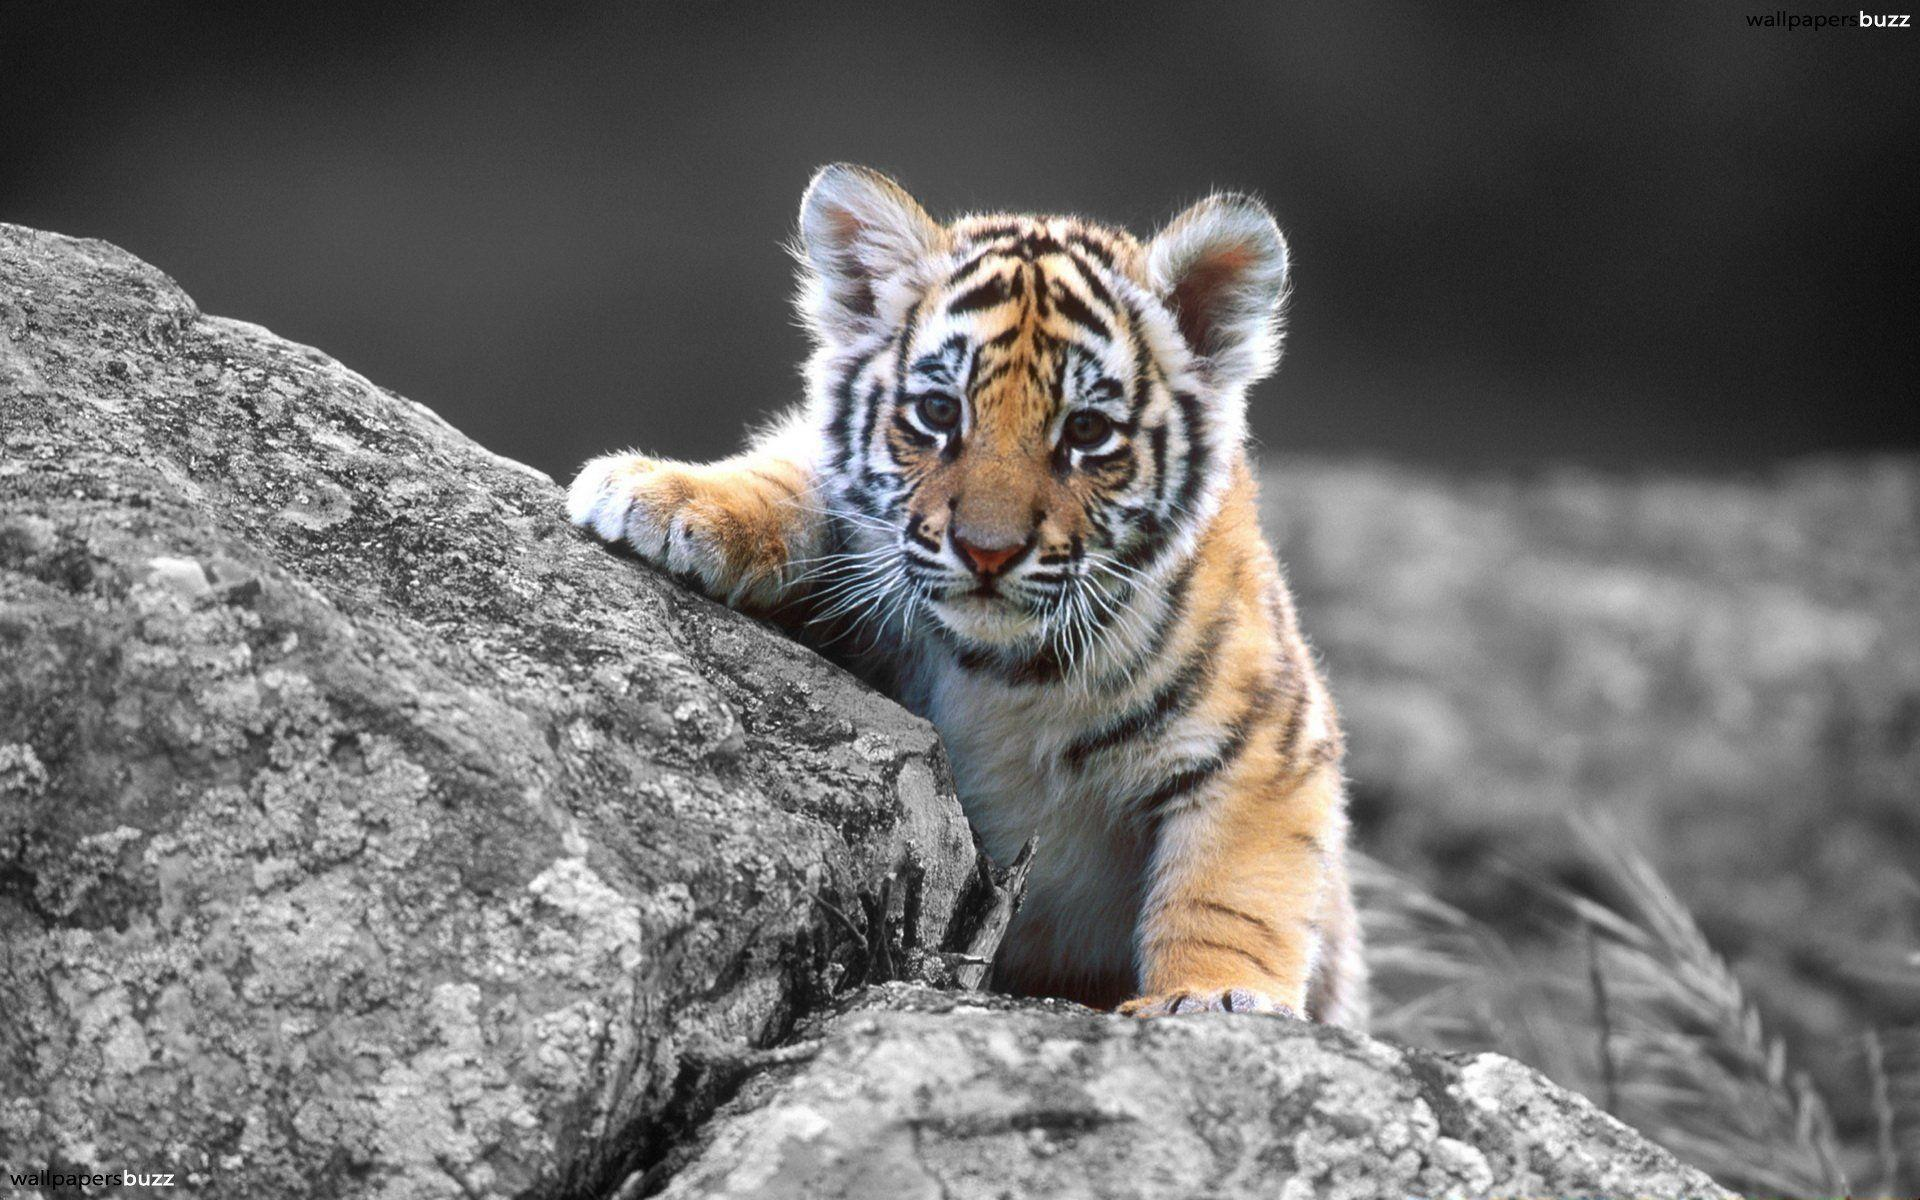 Wallpaper Iphone Black Baby Tiger